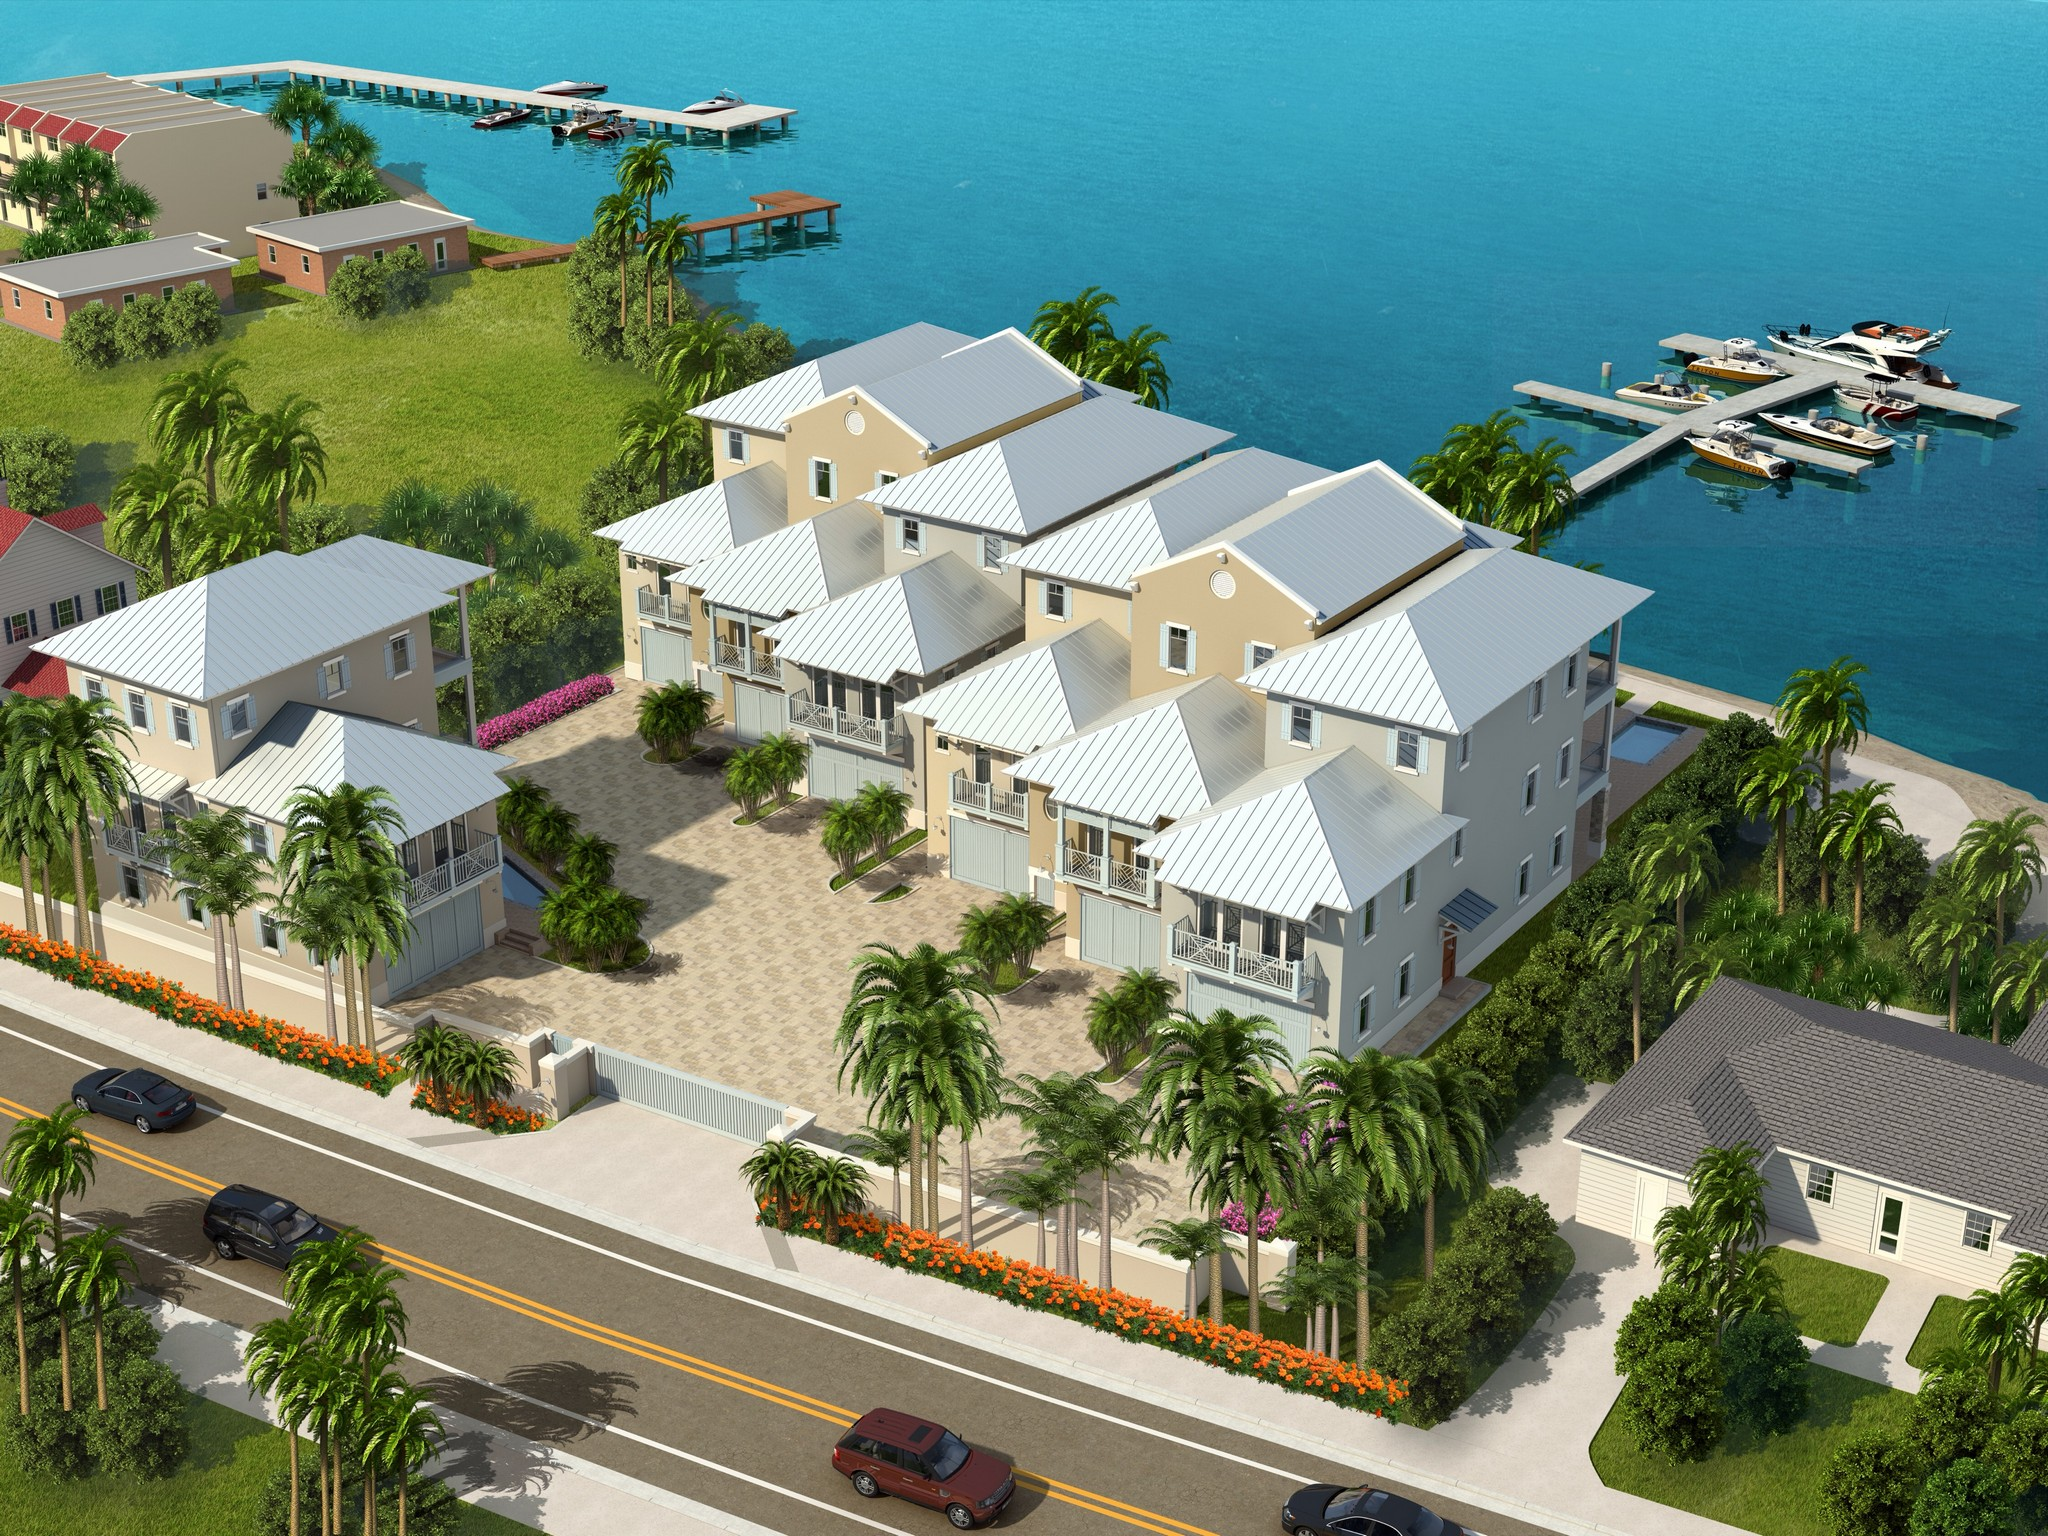 Moradia em banda para Venda às Riverfront Ultra-luxury townhome 1502 Seaway Drive #3 Fort Pierce, Florida 34949 Estados Unidos